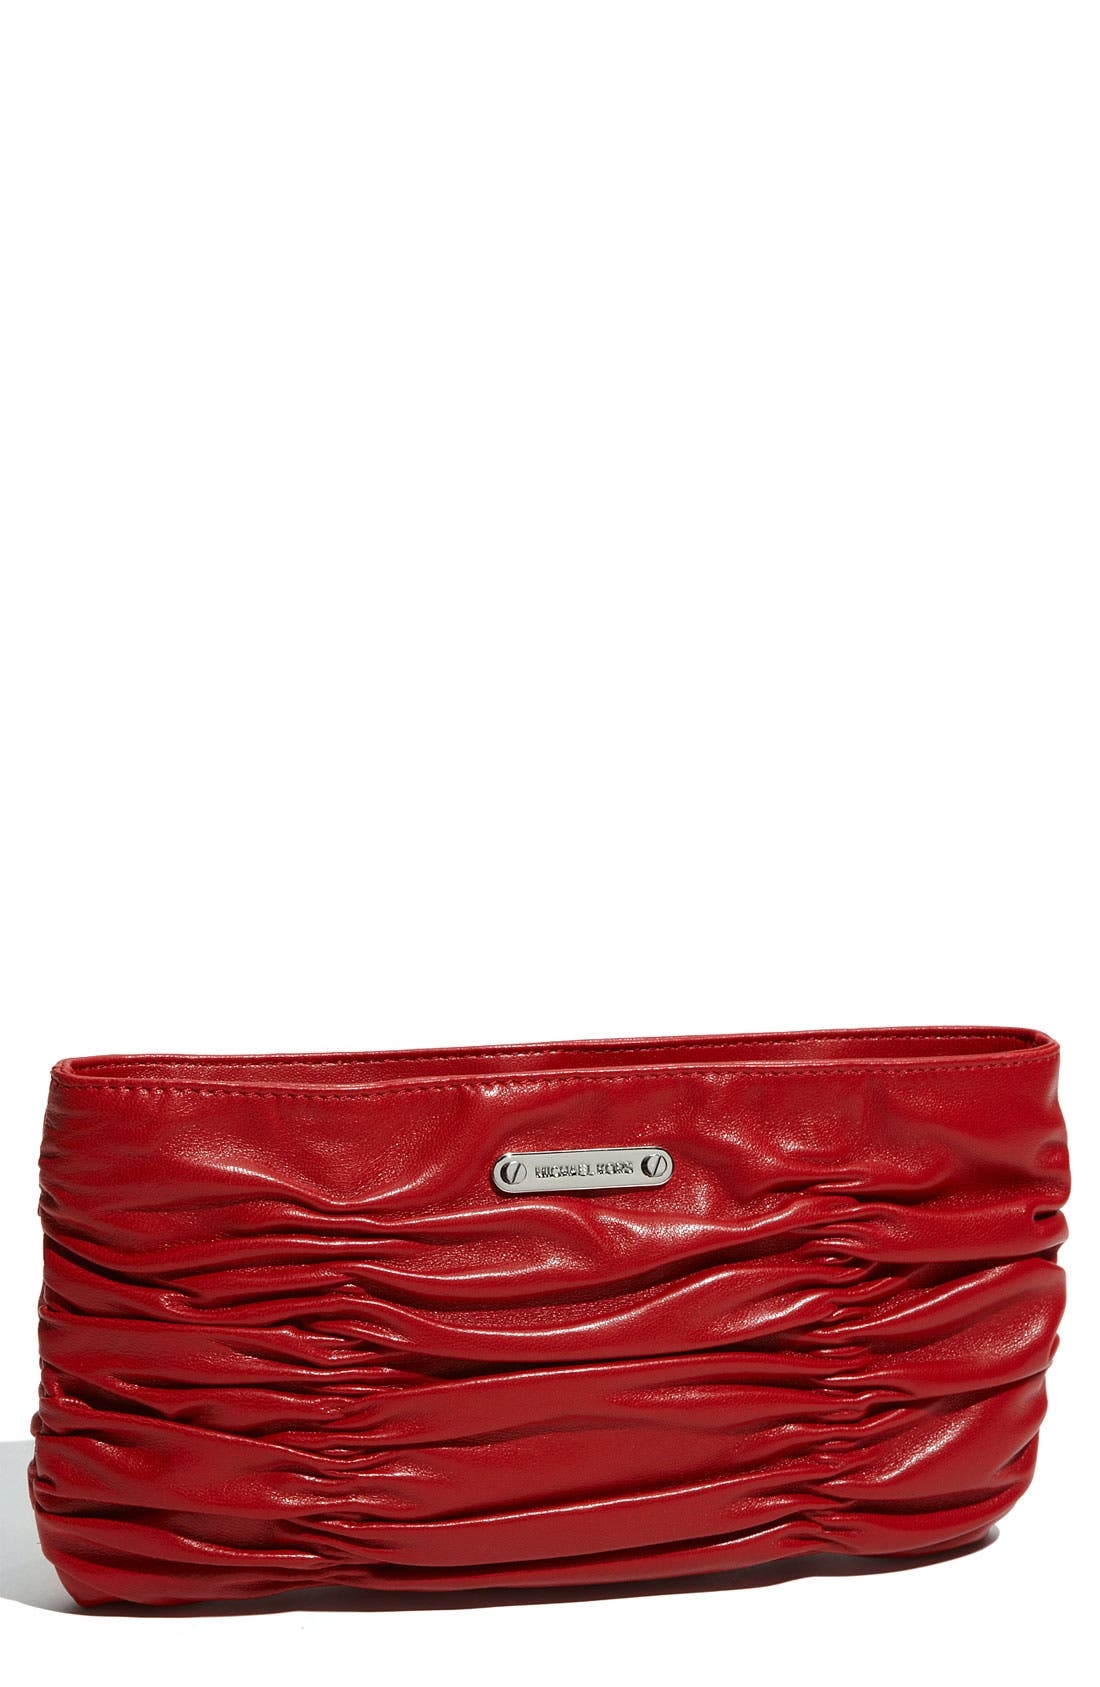 Alternate Image 1 Selected - MICHAEL Michael Kors 'Webster' Clutch